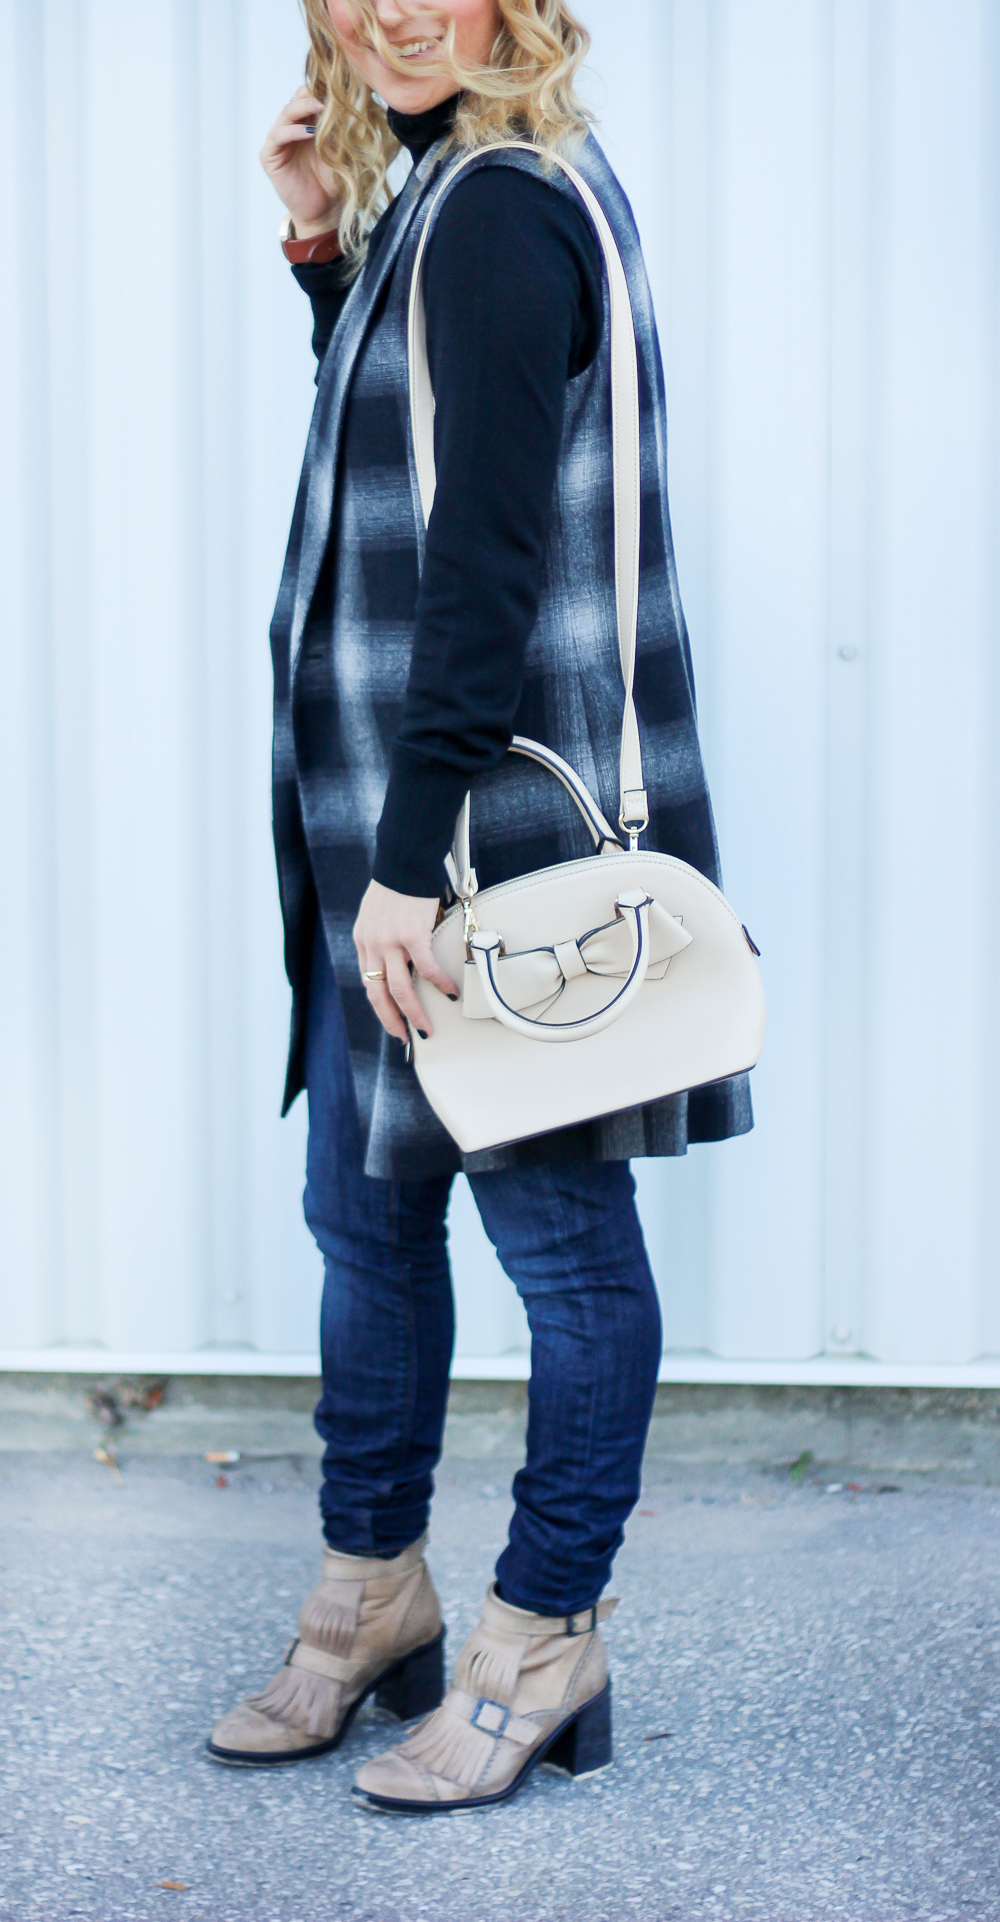 How to wear a turtleneck sweater - see how blogger, Jackie Goldhar, wears a merino wool turtleneck sweater from Gap